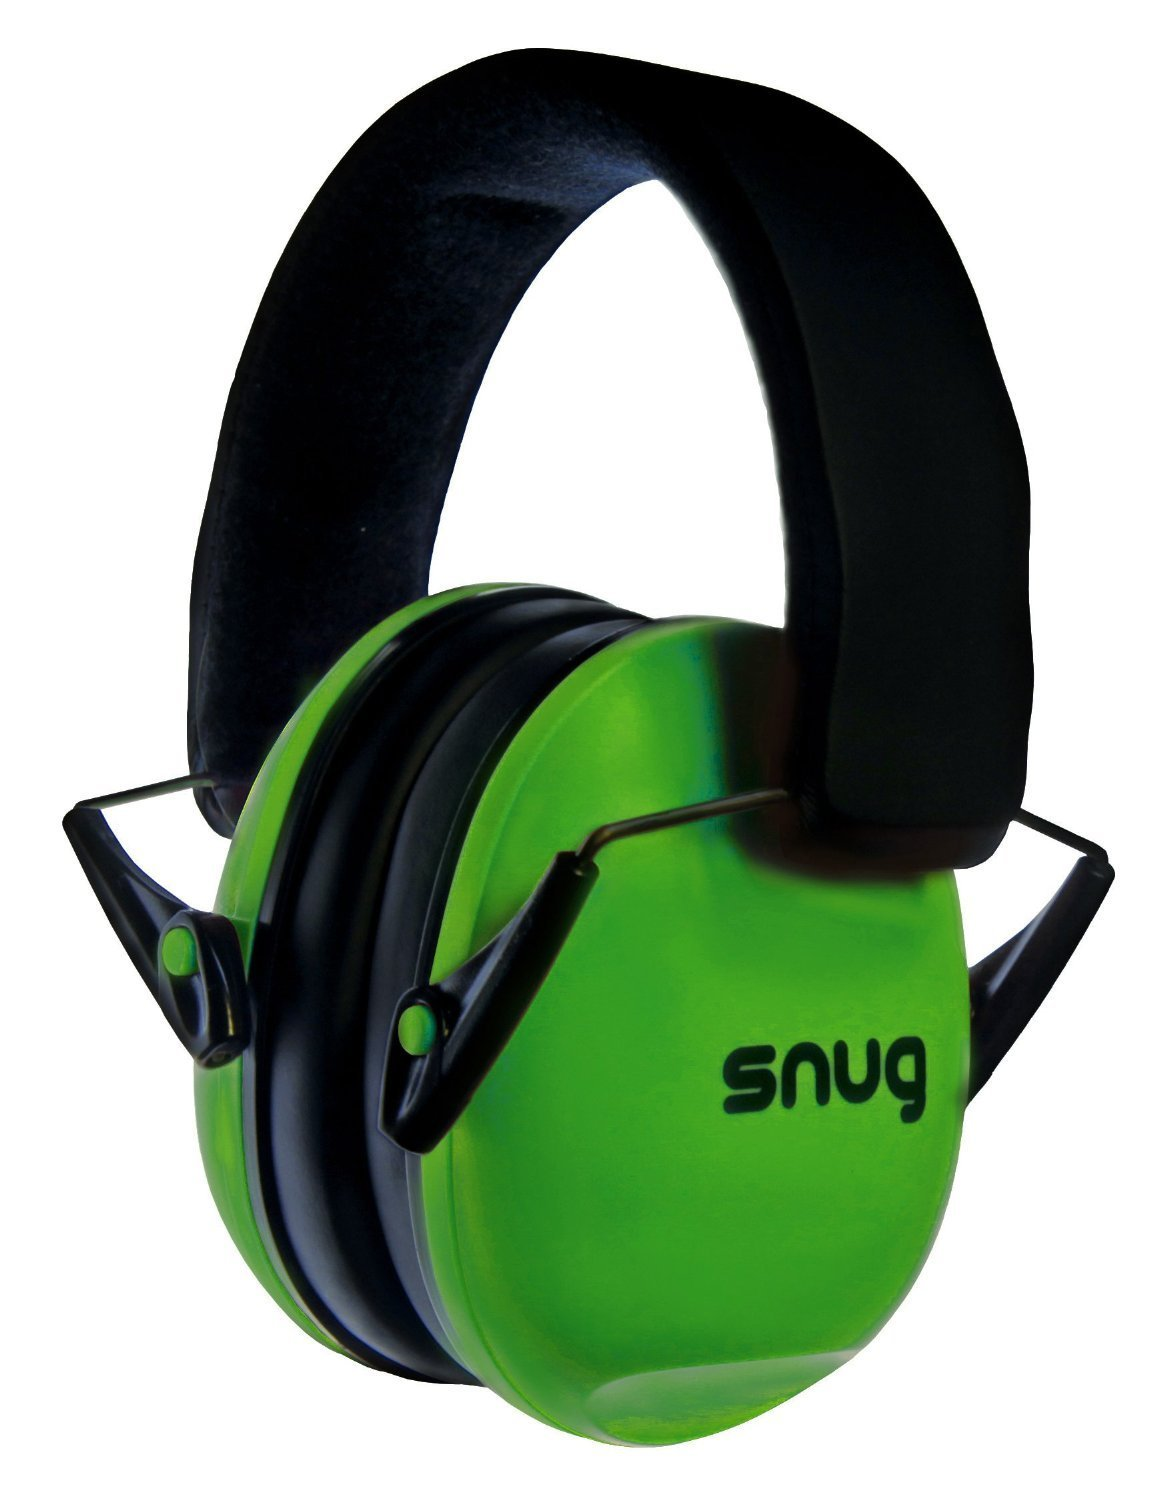 Snug Kids Earmuffs/Hearing Protectors - Adjustable Headband Ear Defenders for Children and Adults (Green) by Snug